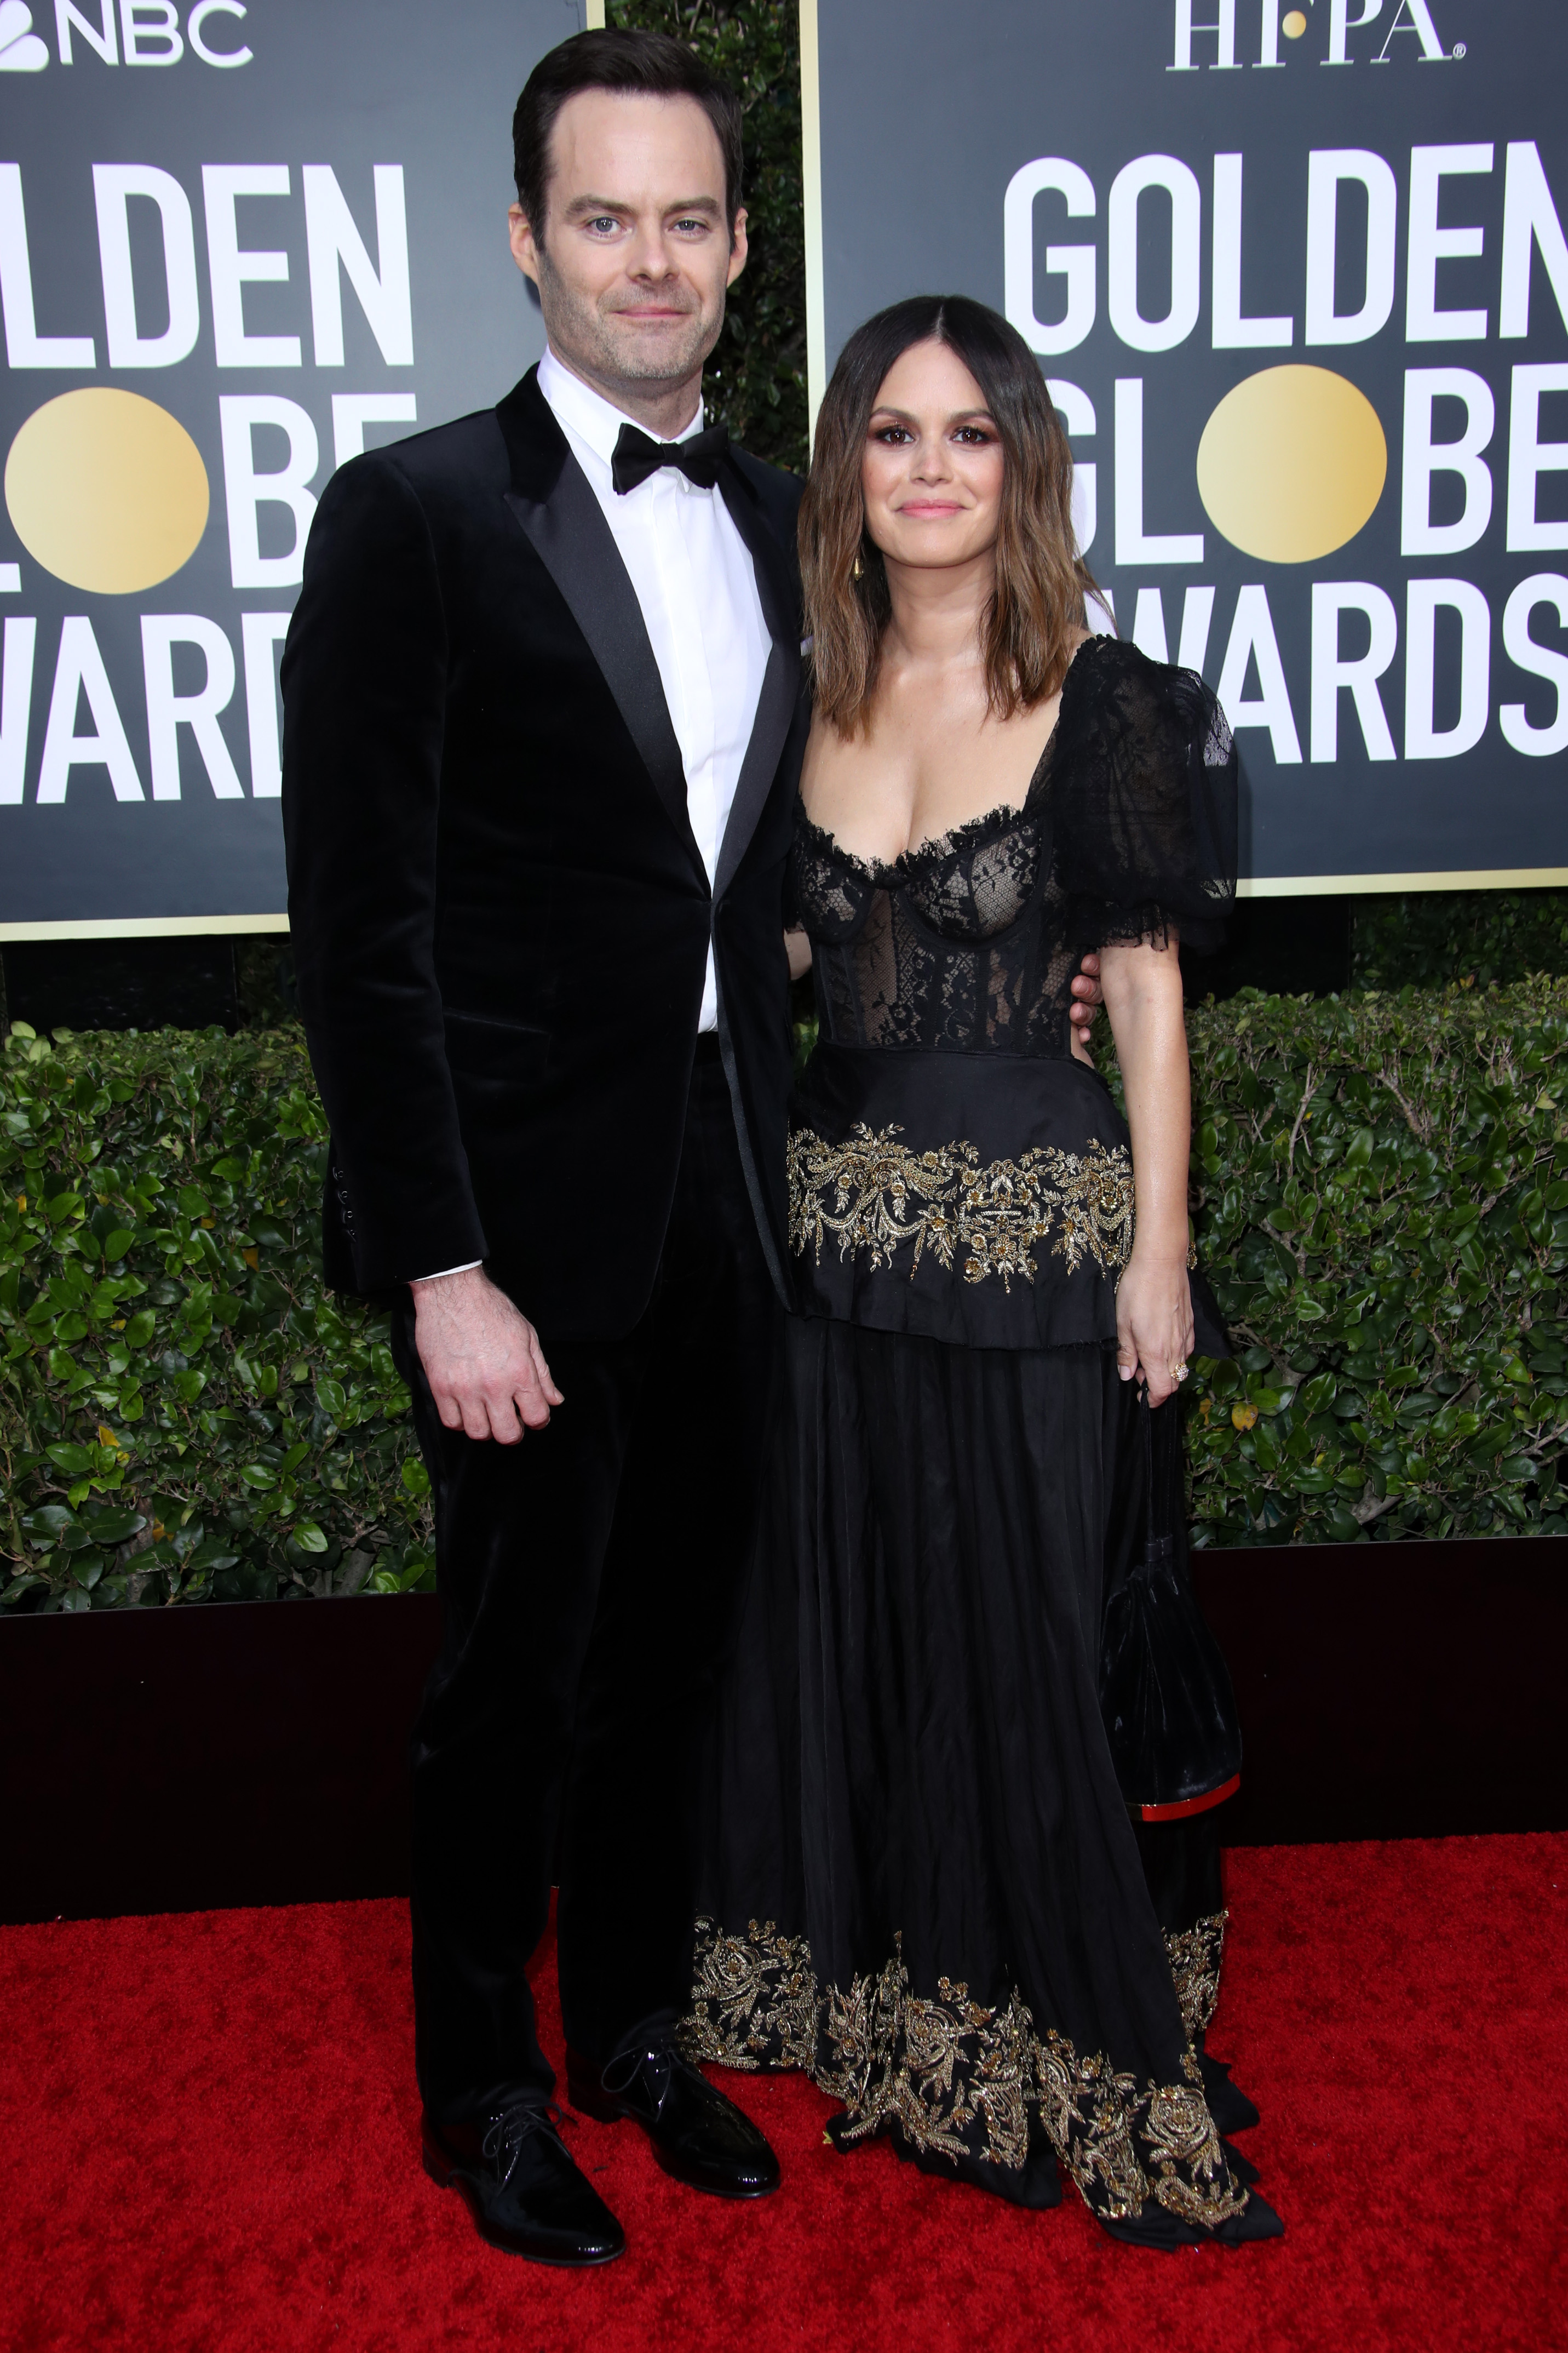 Bill Hader and Rachel Bilson77th Annual Golden Globe Awards, Arrivals, Los Angeles, USA - 05 Jan 2020